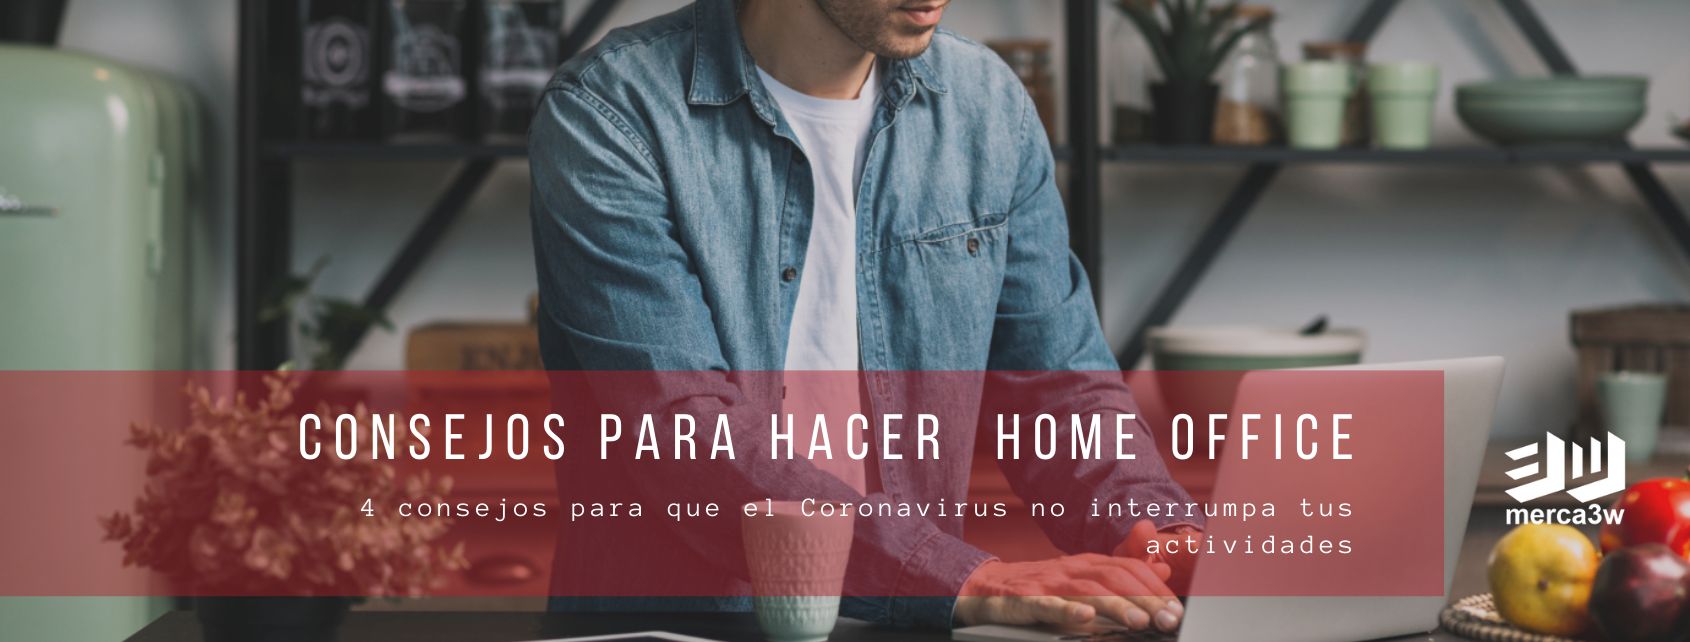 Consejos para hacer home office